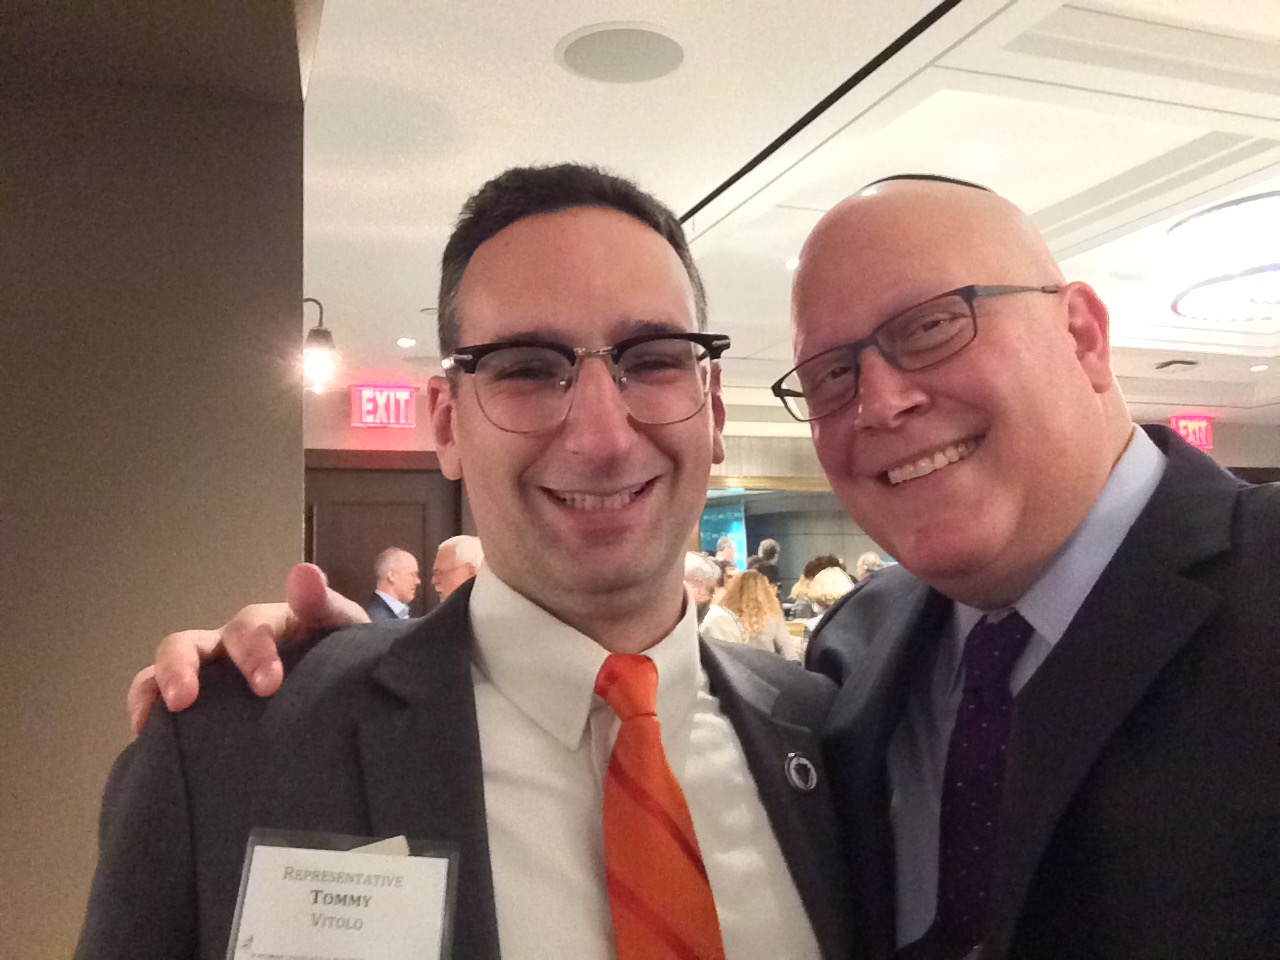 Tommy Vitolo and Jeremy Burton at a JCRC event